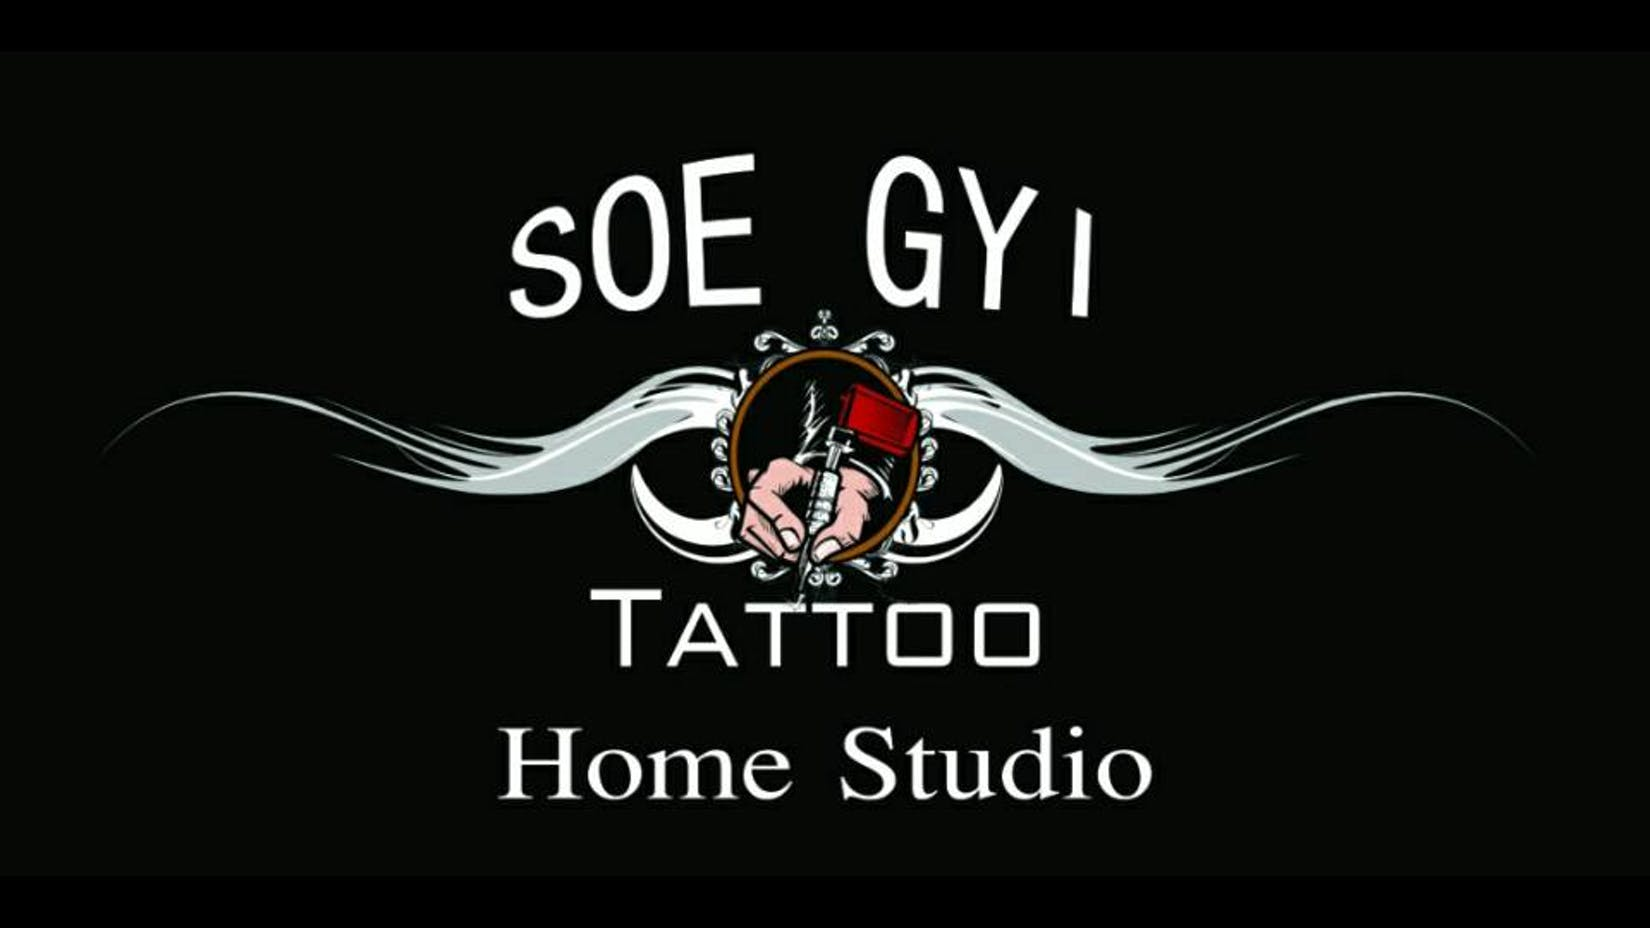 Soe gyi tattoo | Beauty